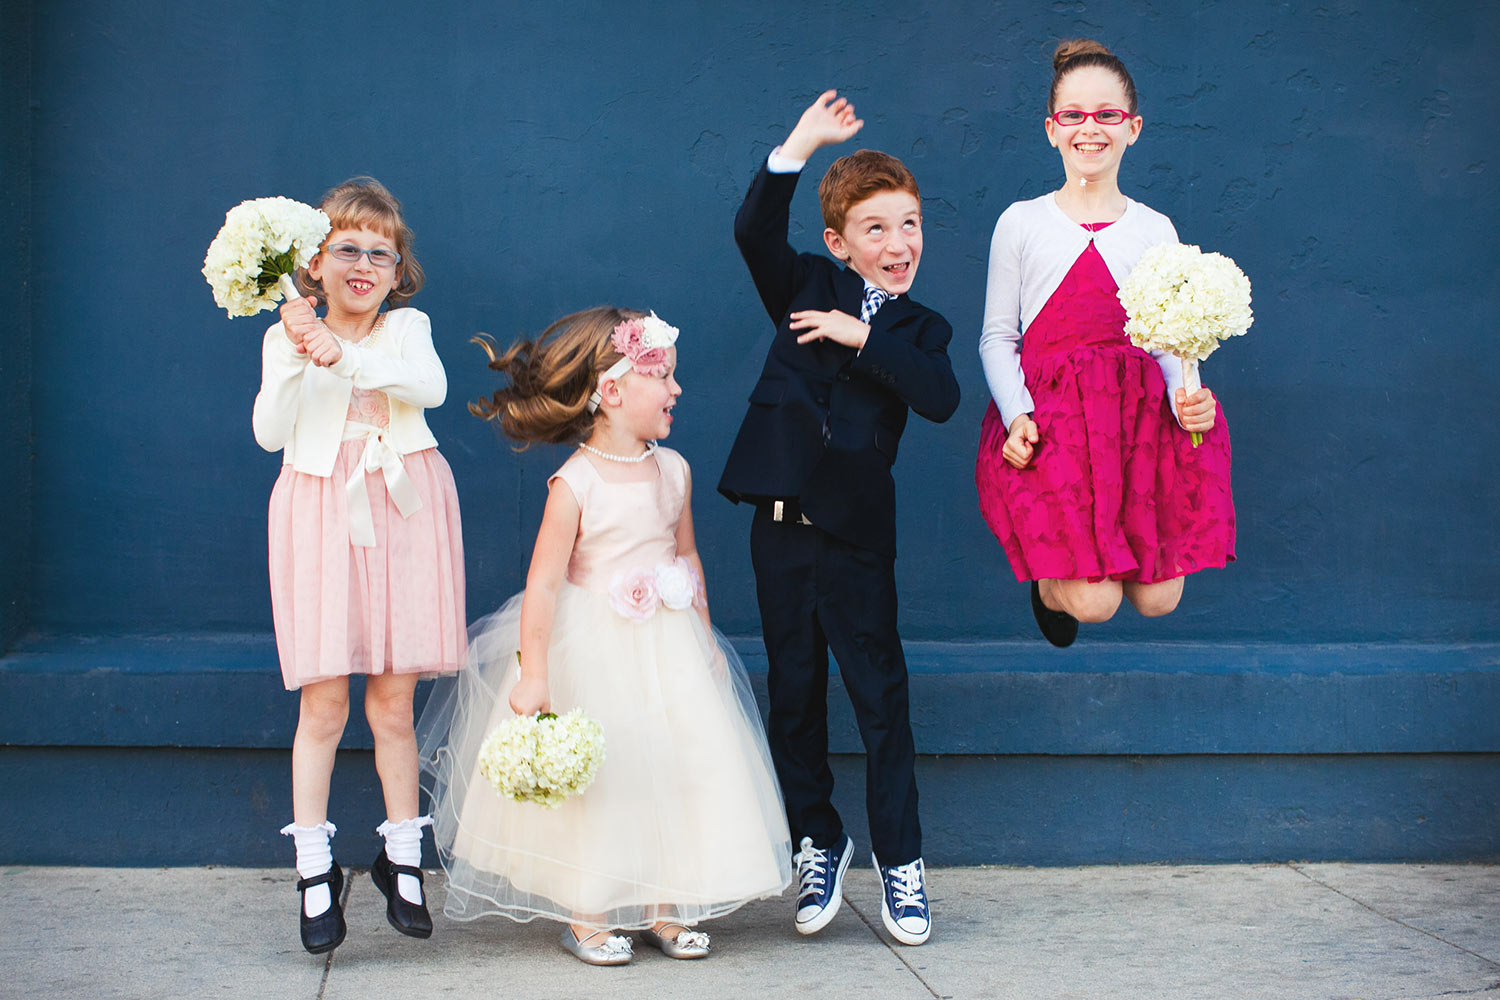 funny-kids-bridal-party-group-shot-worlds-best-wedding-photos-callaway-gable-los-angeles-wedding-photographers